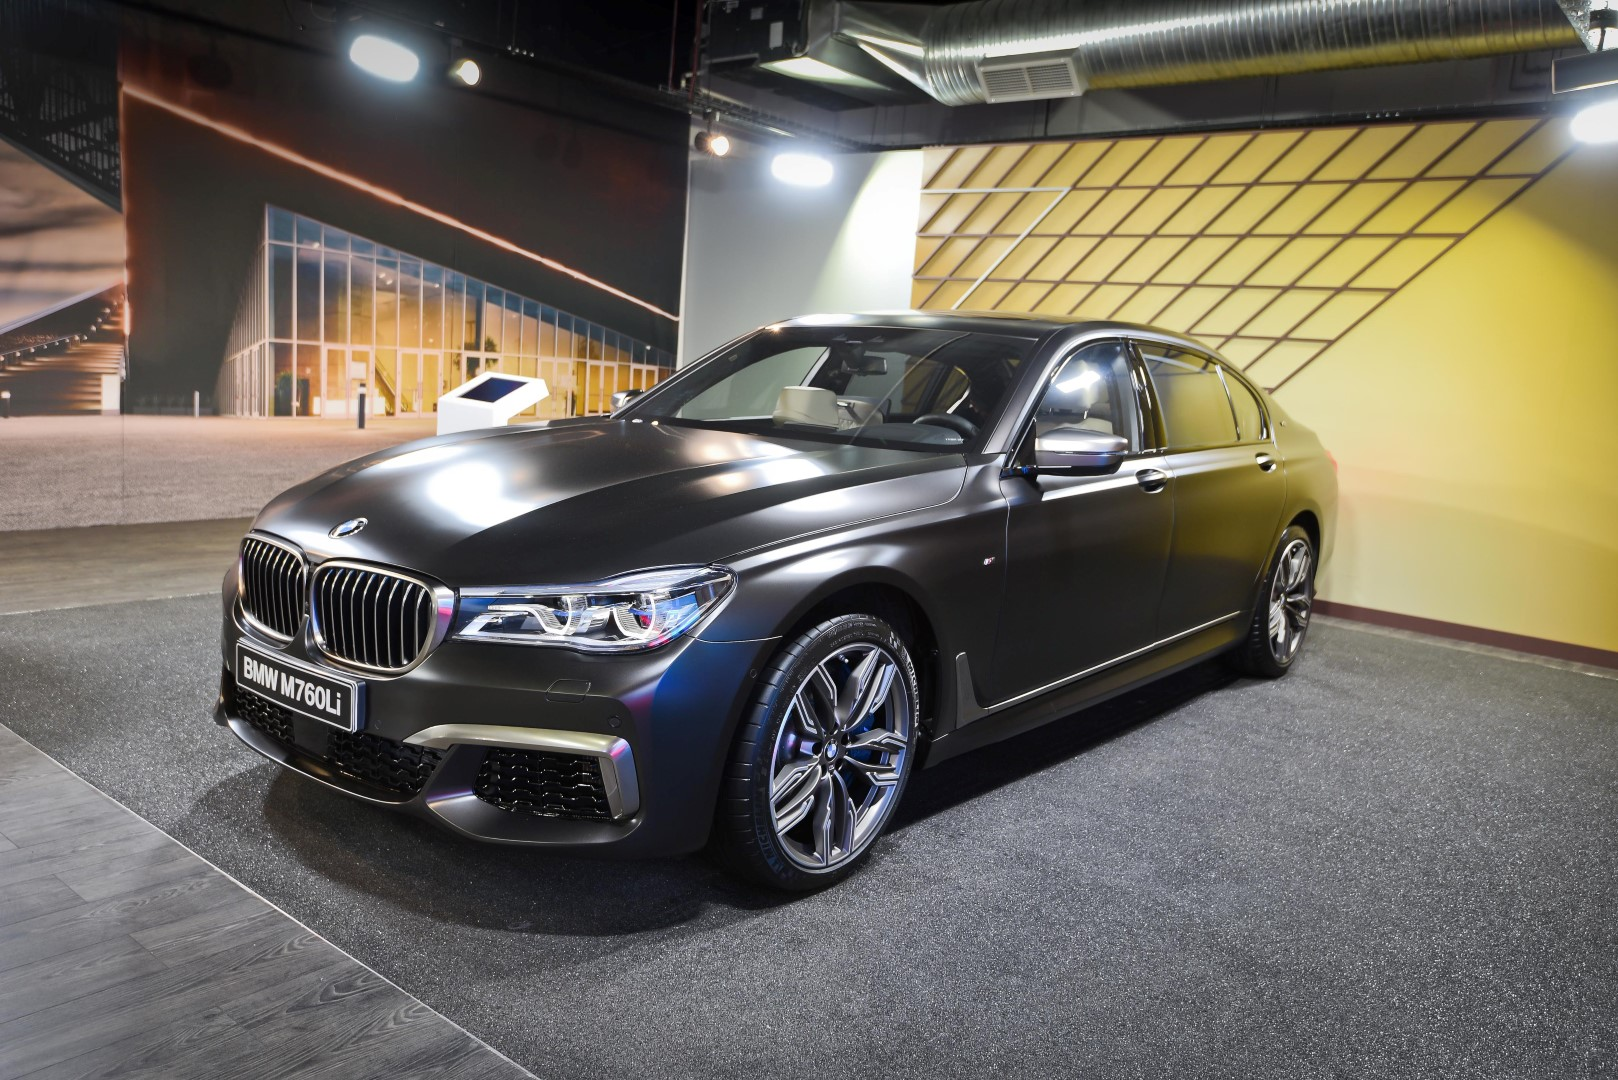 Launched - The New BMW M760Li xDrive | Prestige Digital